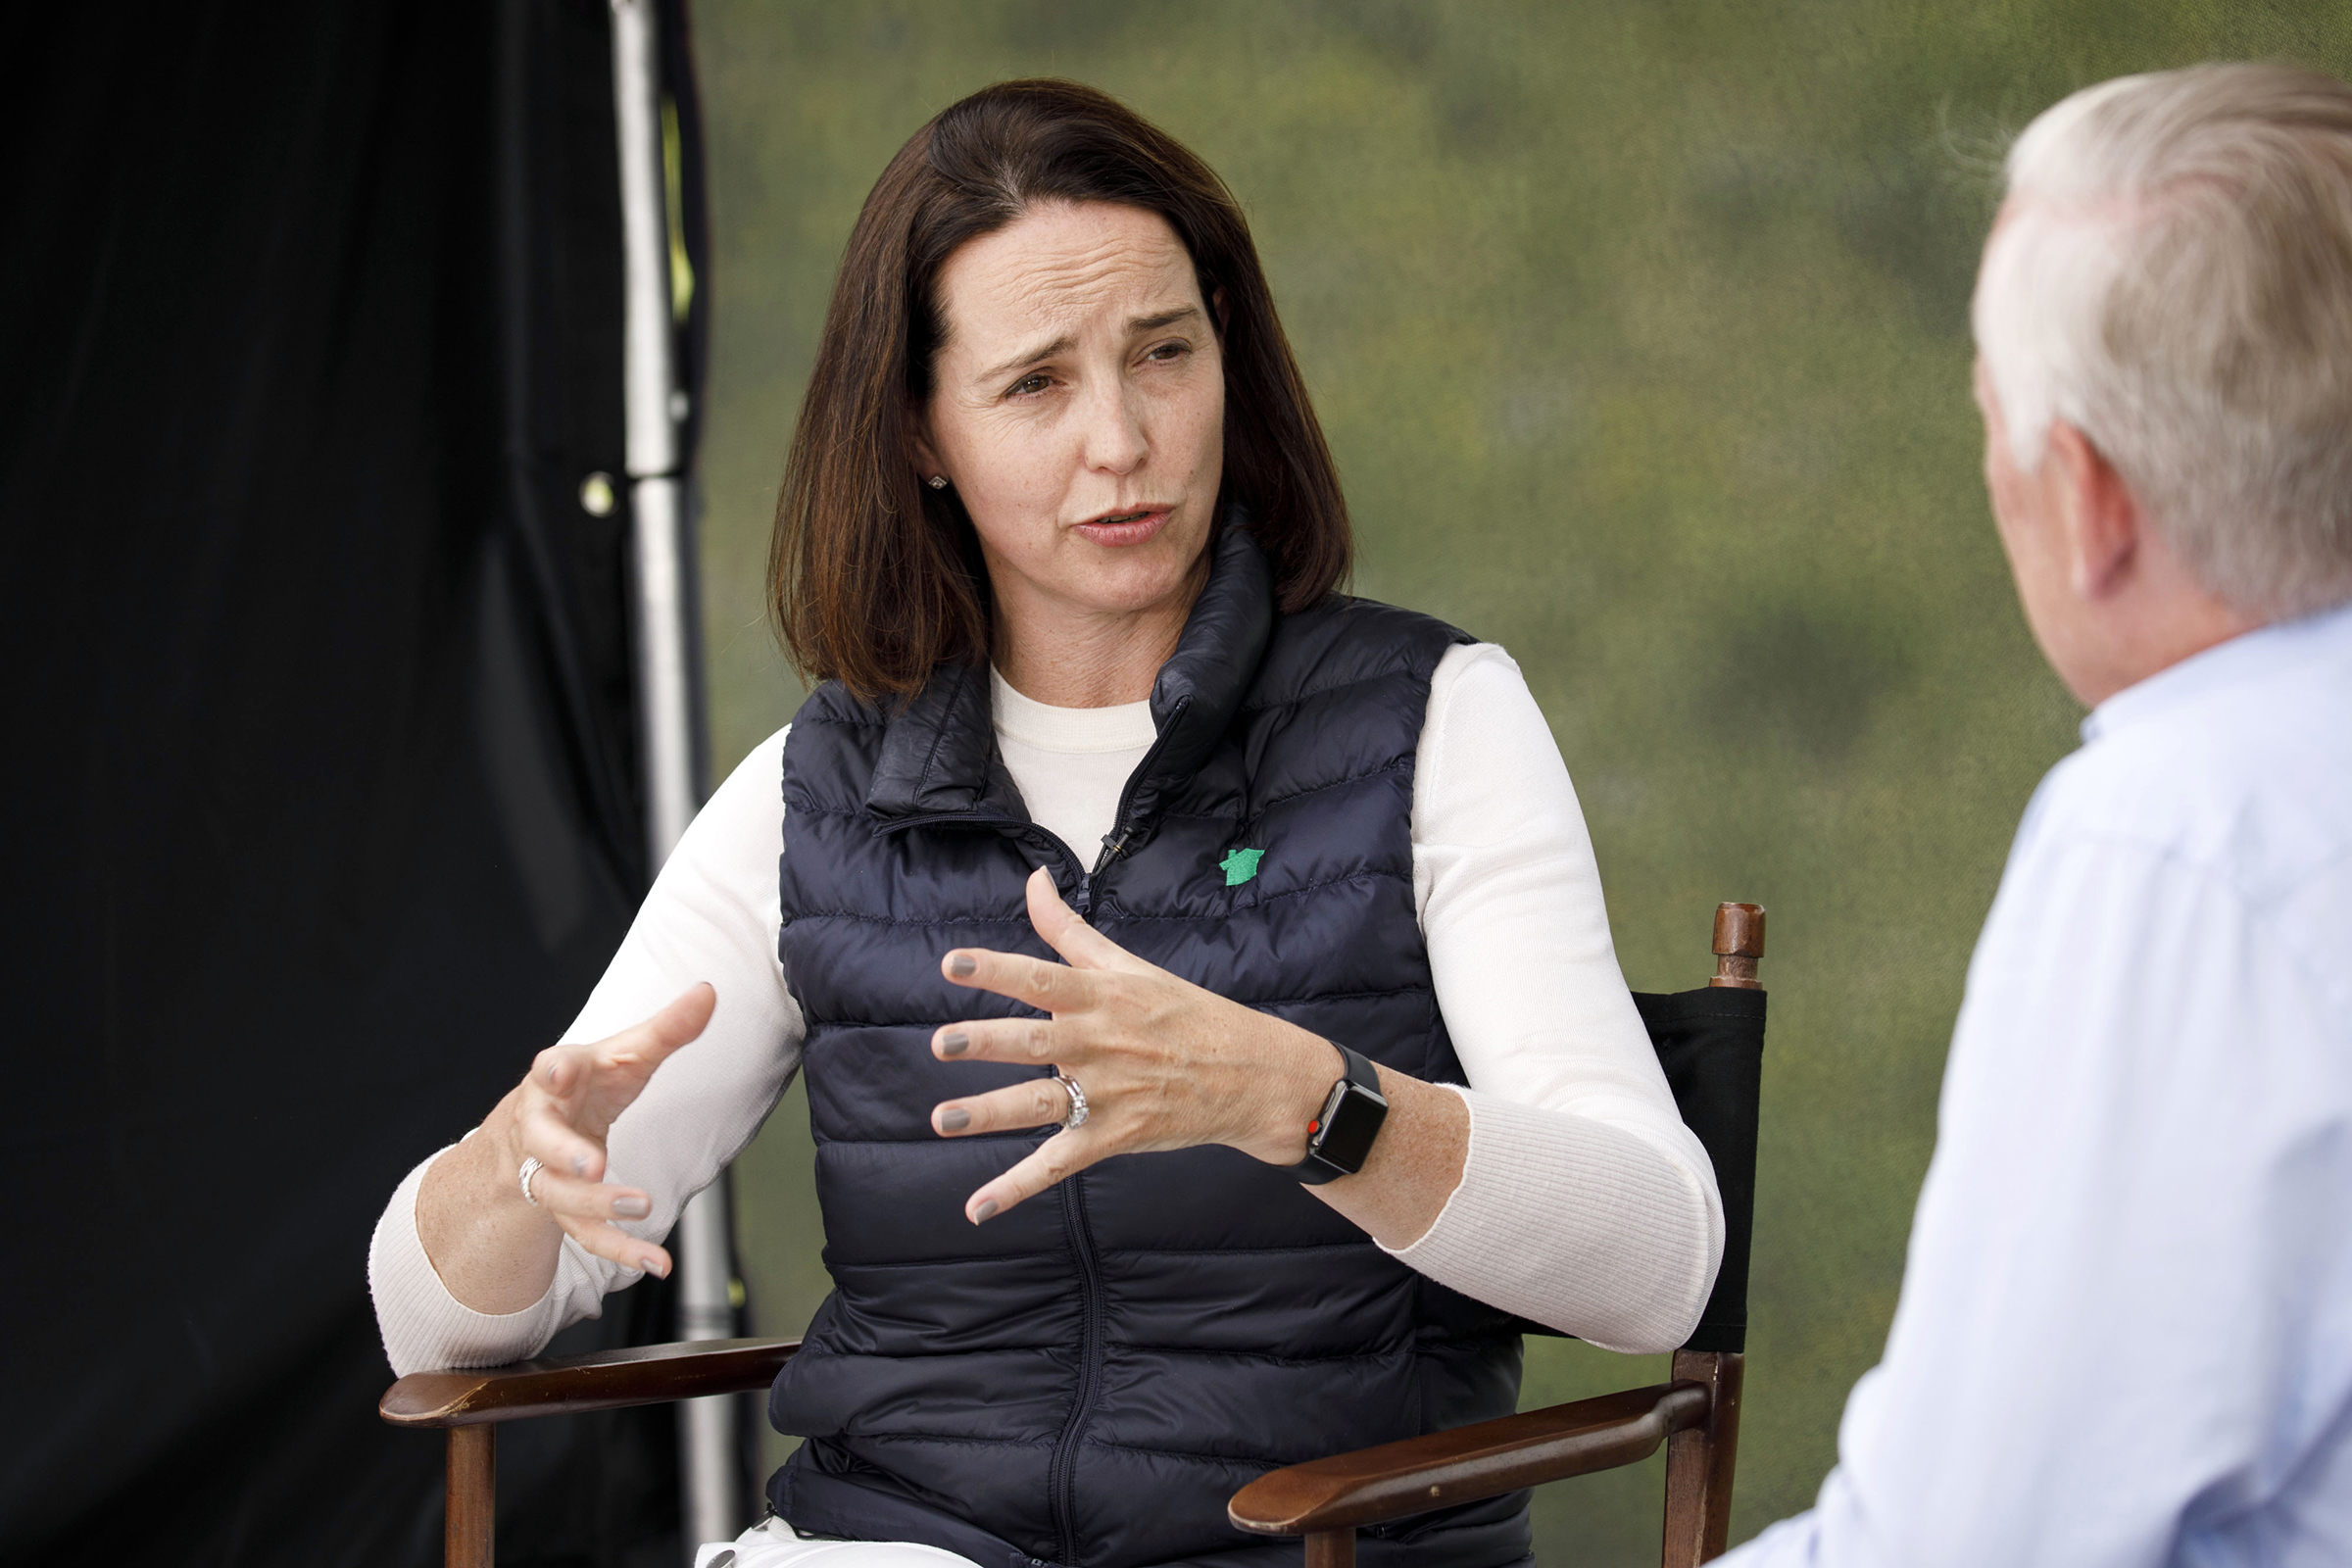 Sarah Friar, CEO of Nextdoor, speaks during a television interview on the sidelines of the Allen & Co. Media and Technology Conference in Sun Valley, Idaho on July 10, 2019.